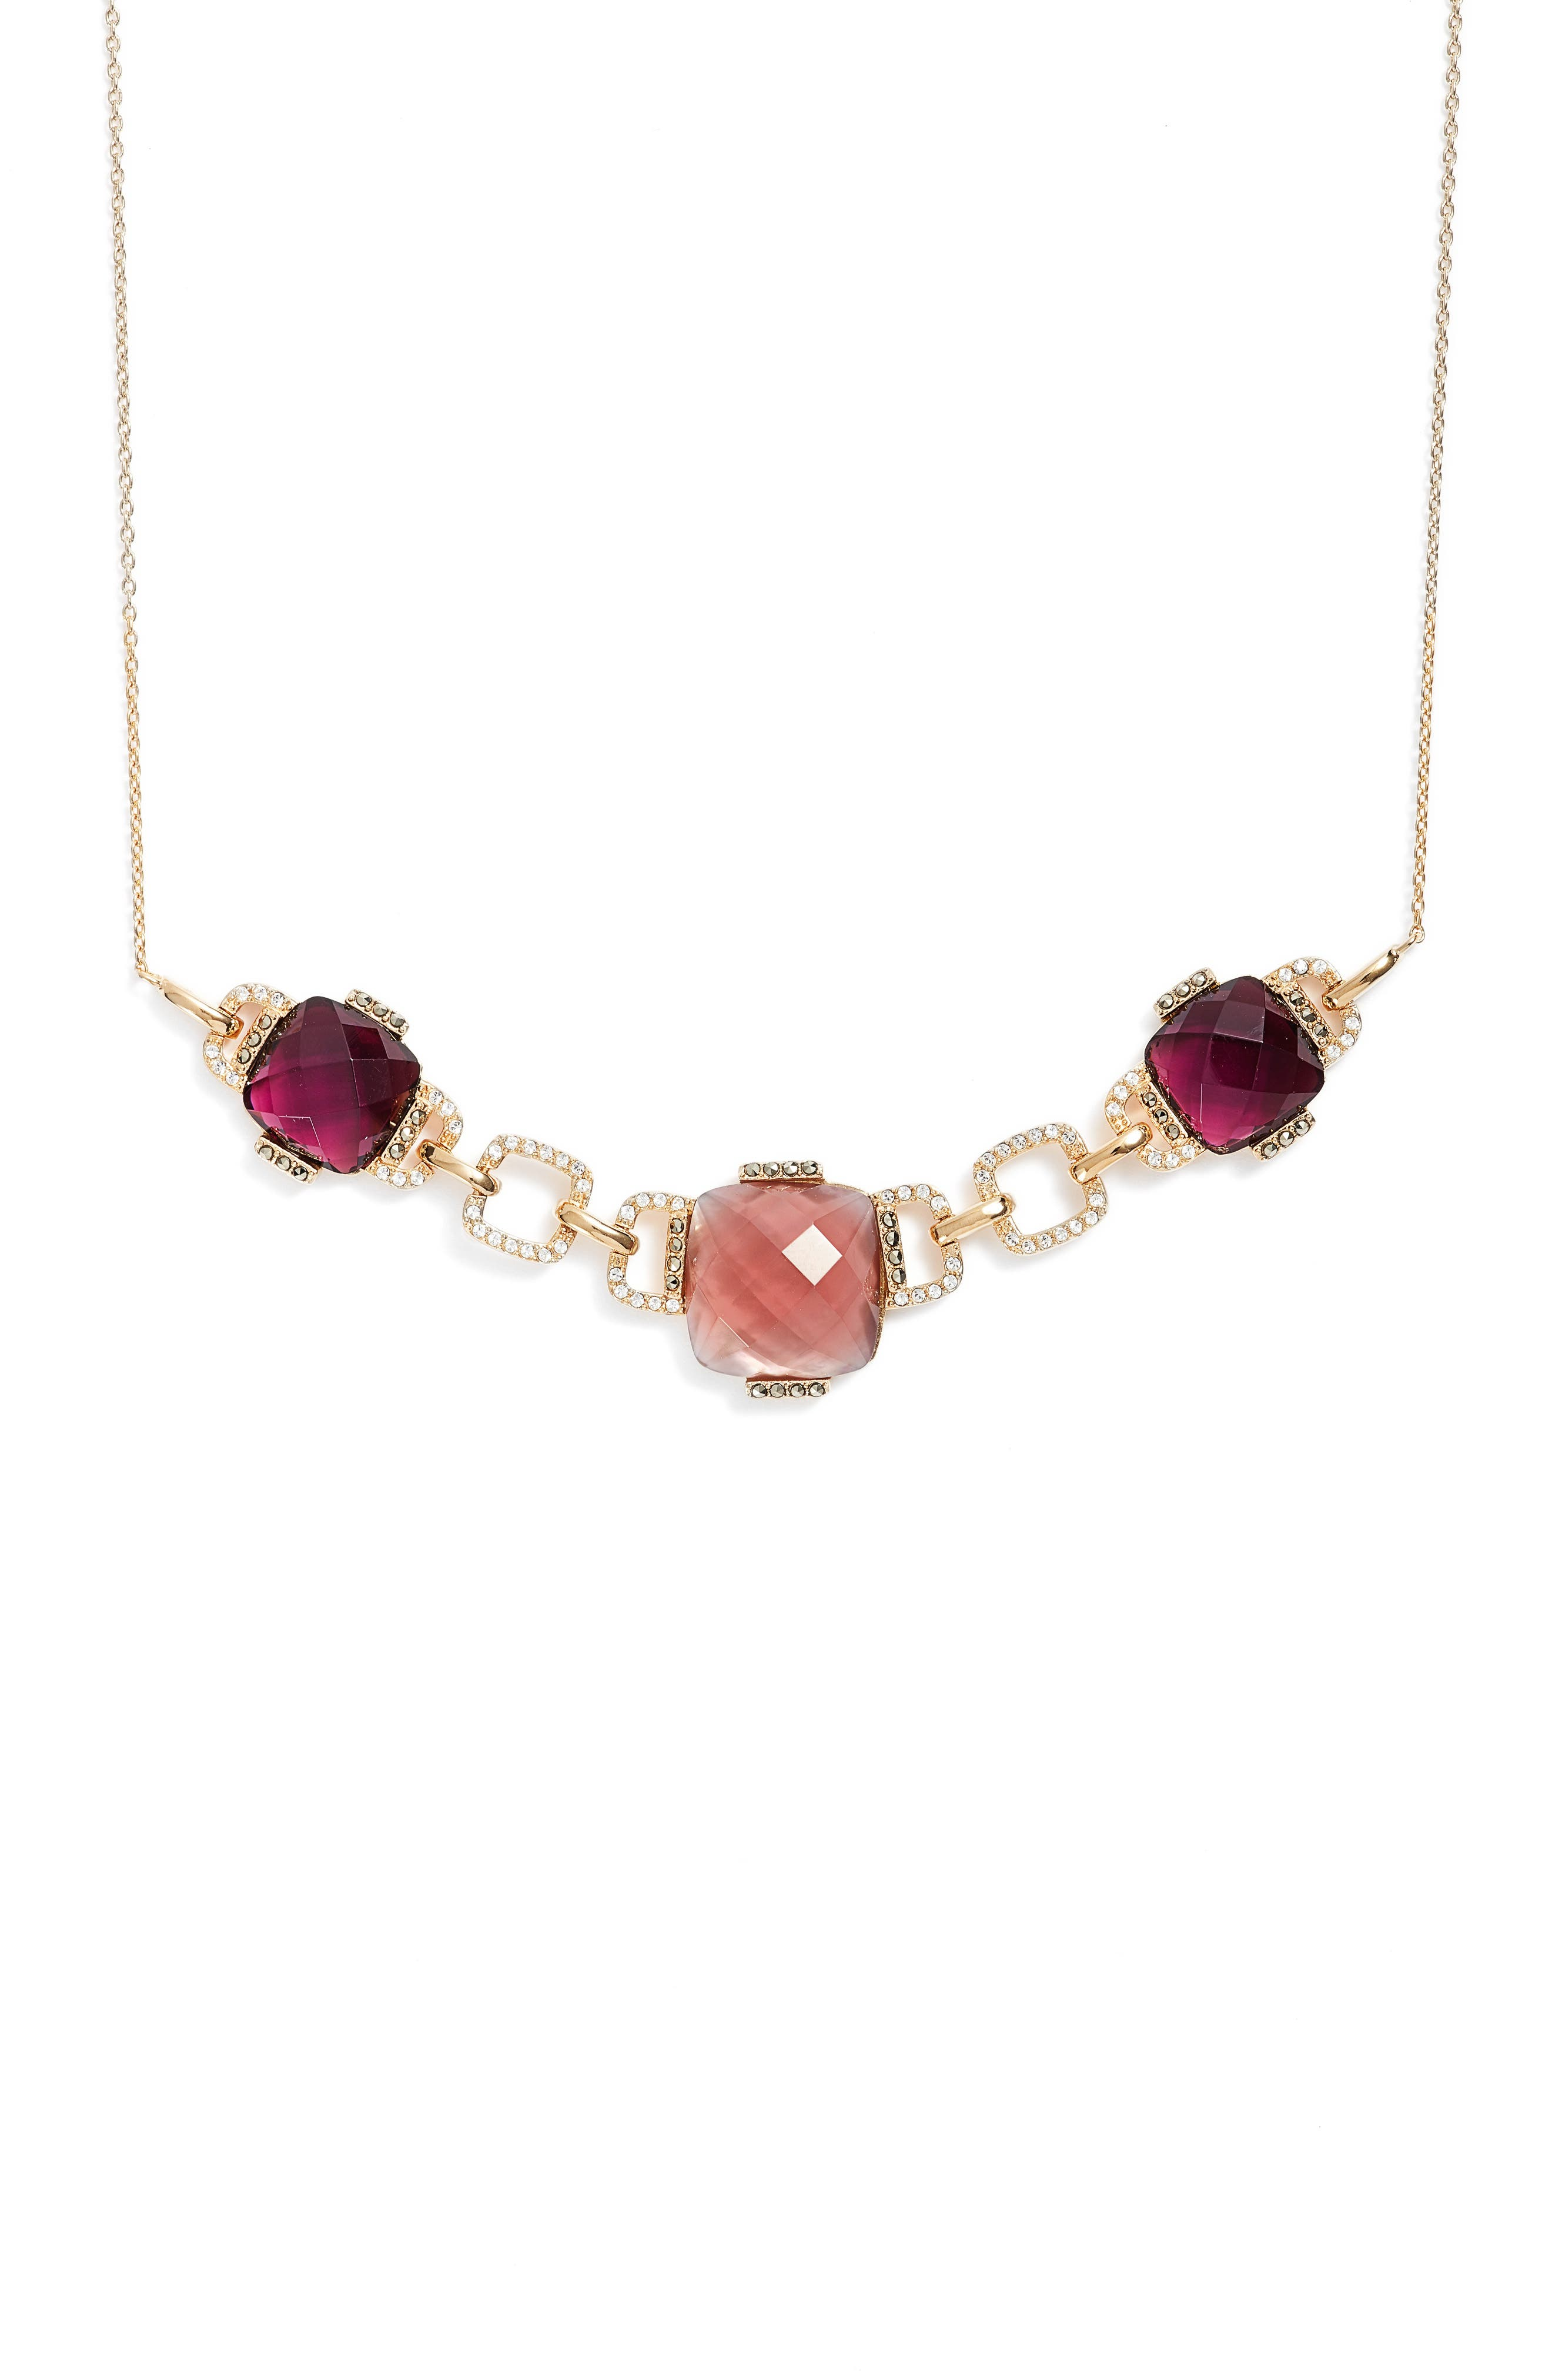 Frontal Collar Necklace,                             Main thumbnail 1, color,                             710